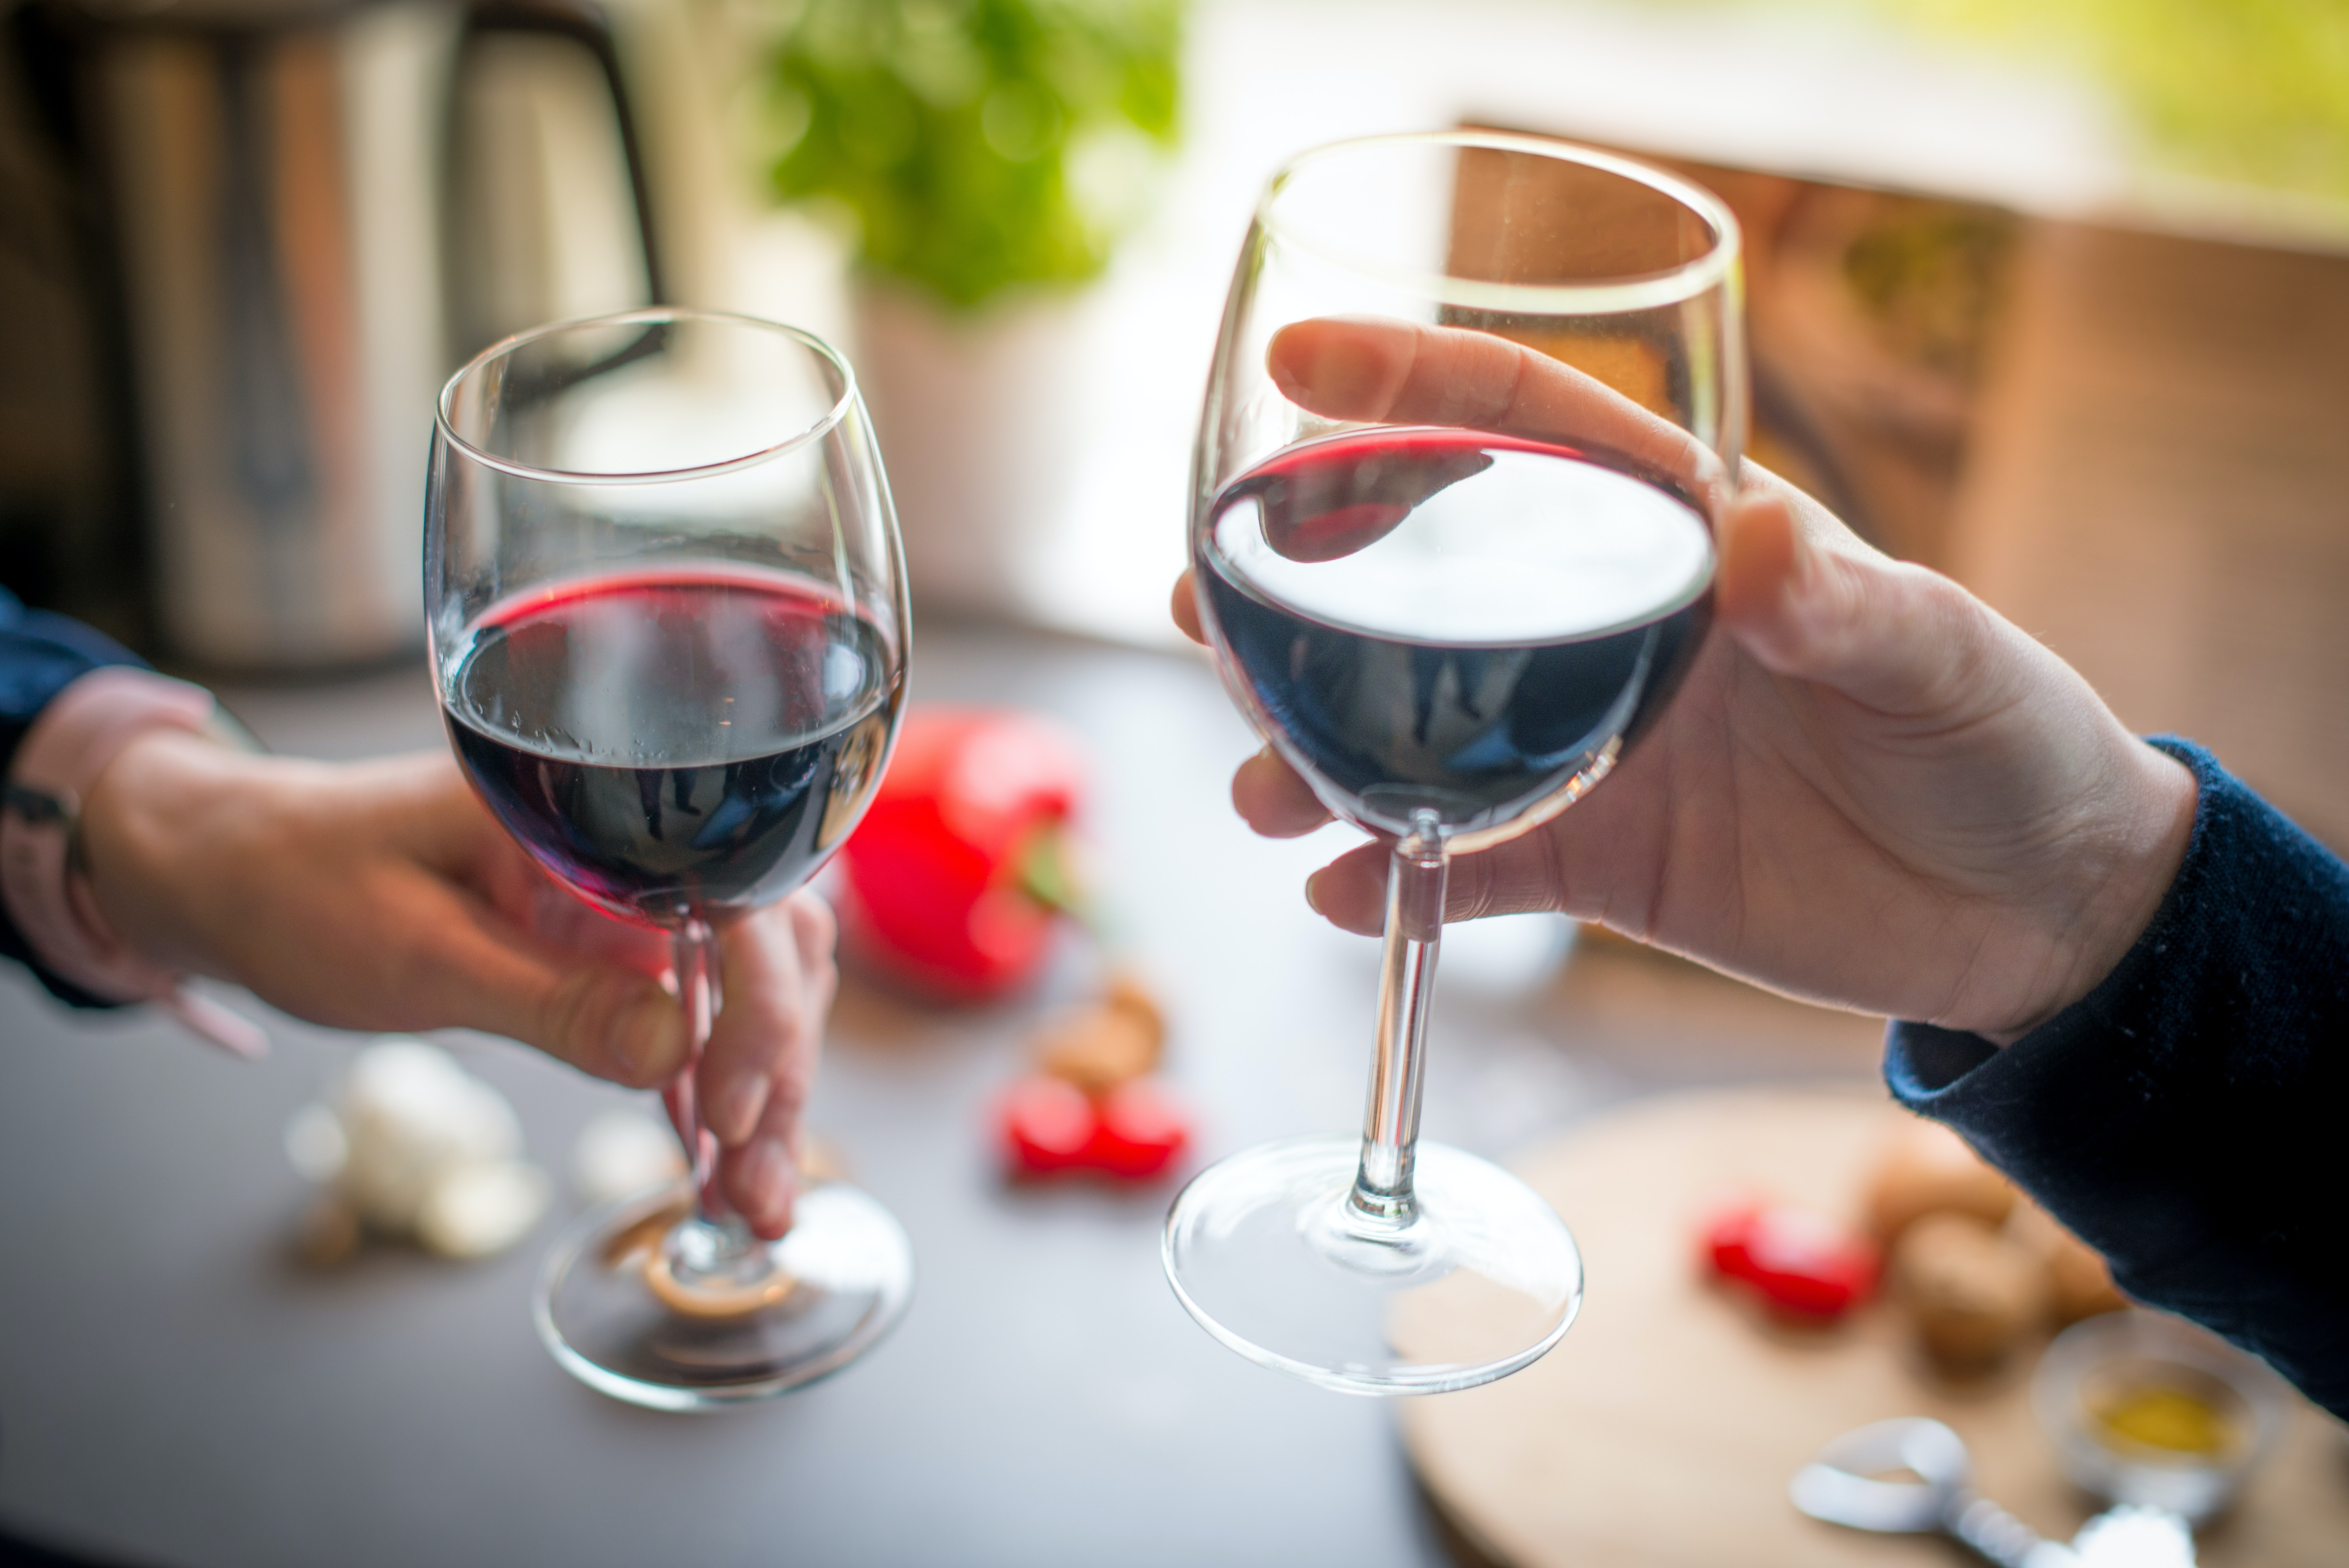 close-up-photo-of-two-people-toasting-with-red-wine-2101186